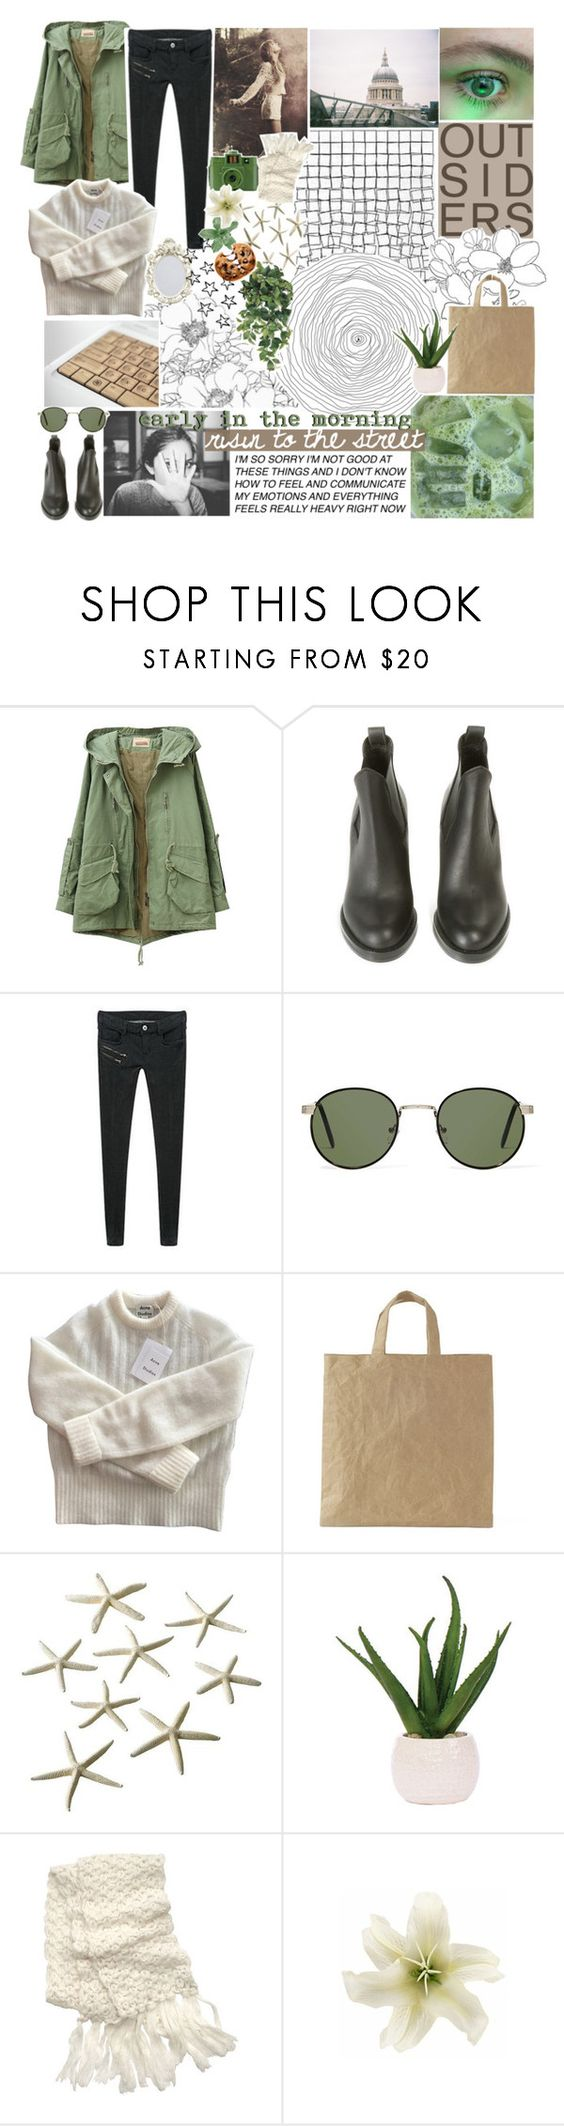 """☾ love the one you got."" by thundxrstorms ❤ liked on Polyvore featuring Acne Studios, PEPER, A.J. Morgan, Lux-Art Silks, Hollister Co., Guide London, Clips, Nestlé, TalisLittleTag and MeenaGotTagged"